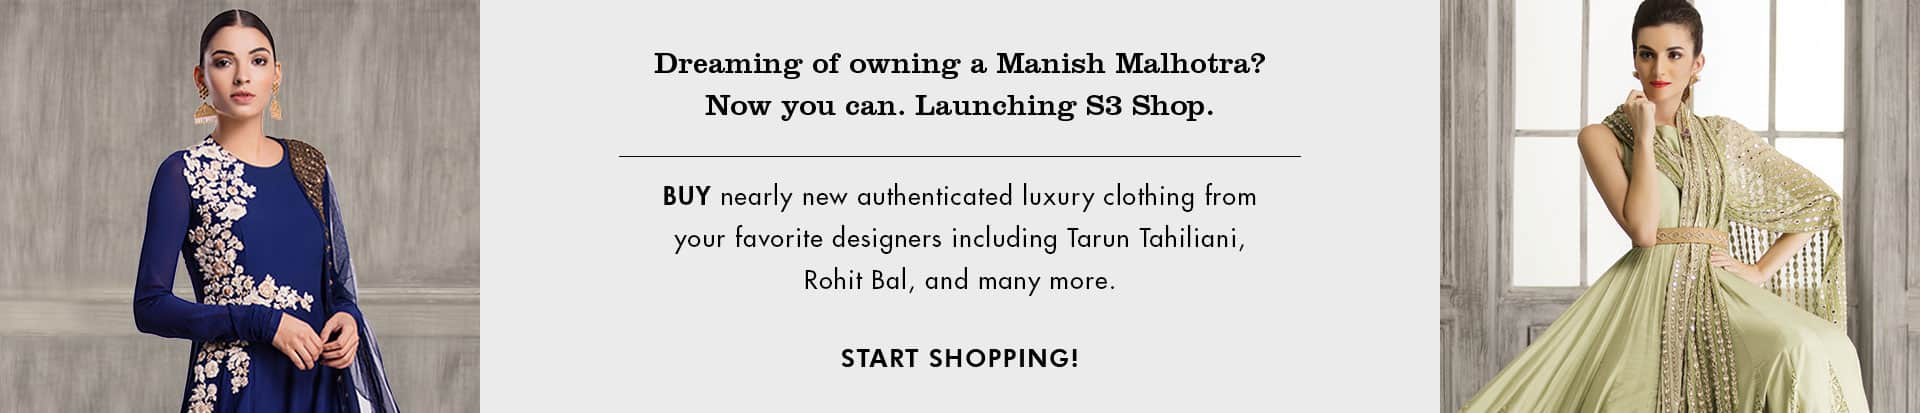 Dreaming of owning a Manish Malhotra? Now you can. Launching S3 Shop.